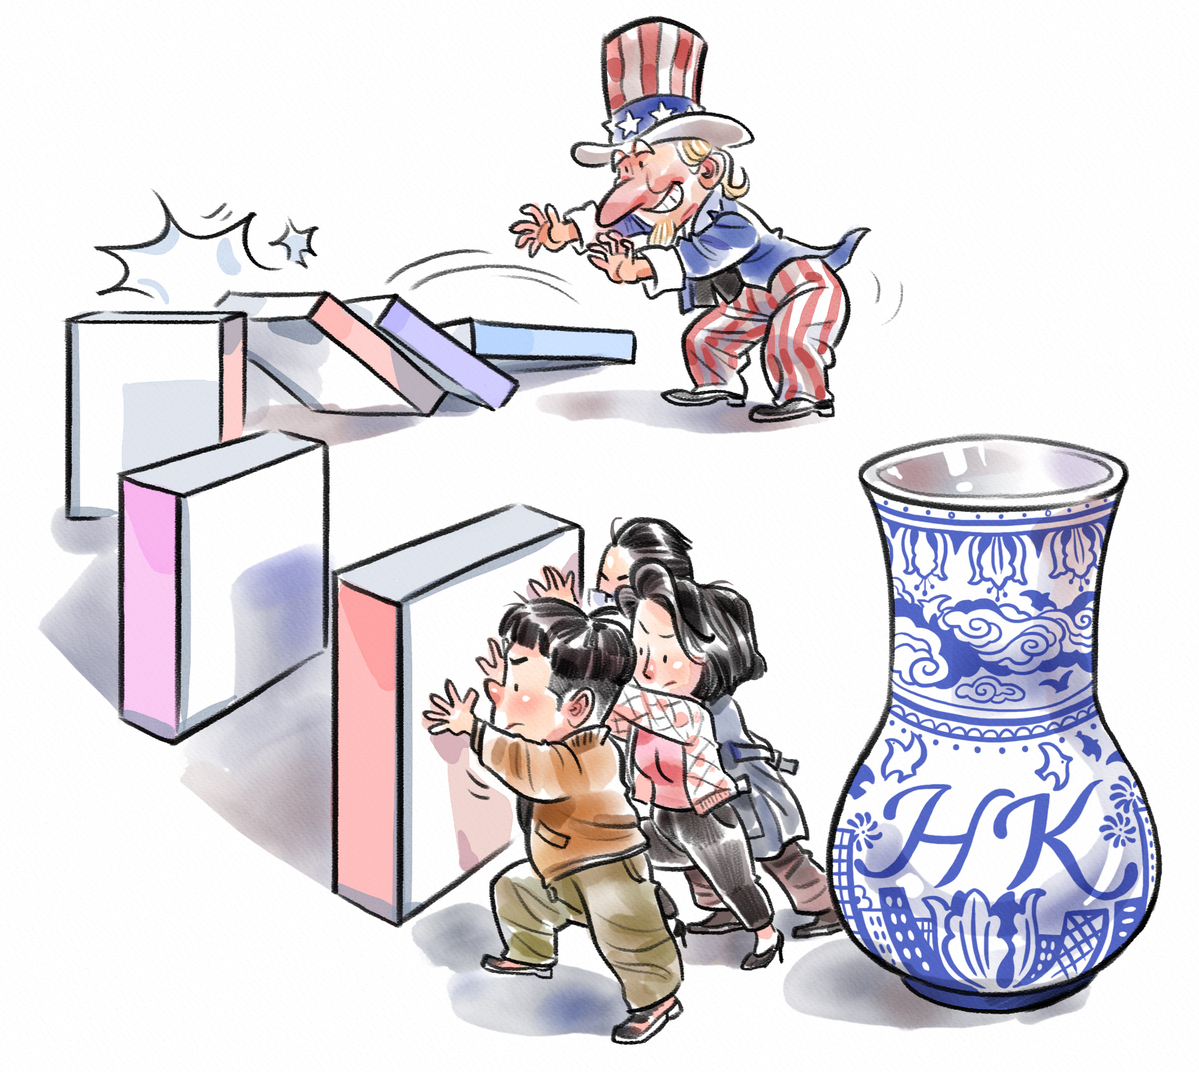 US incites violence by passing HK laws.